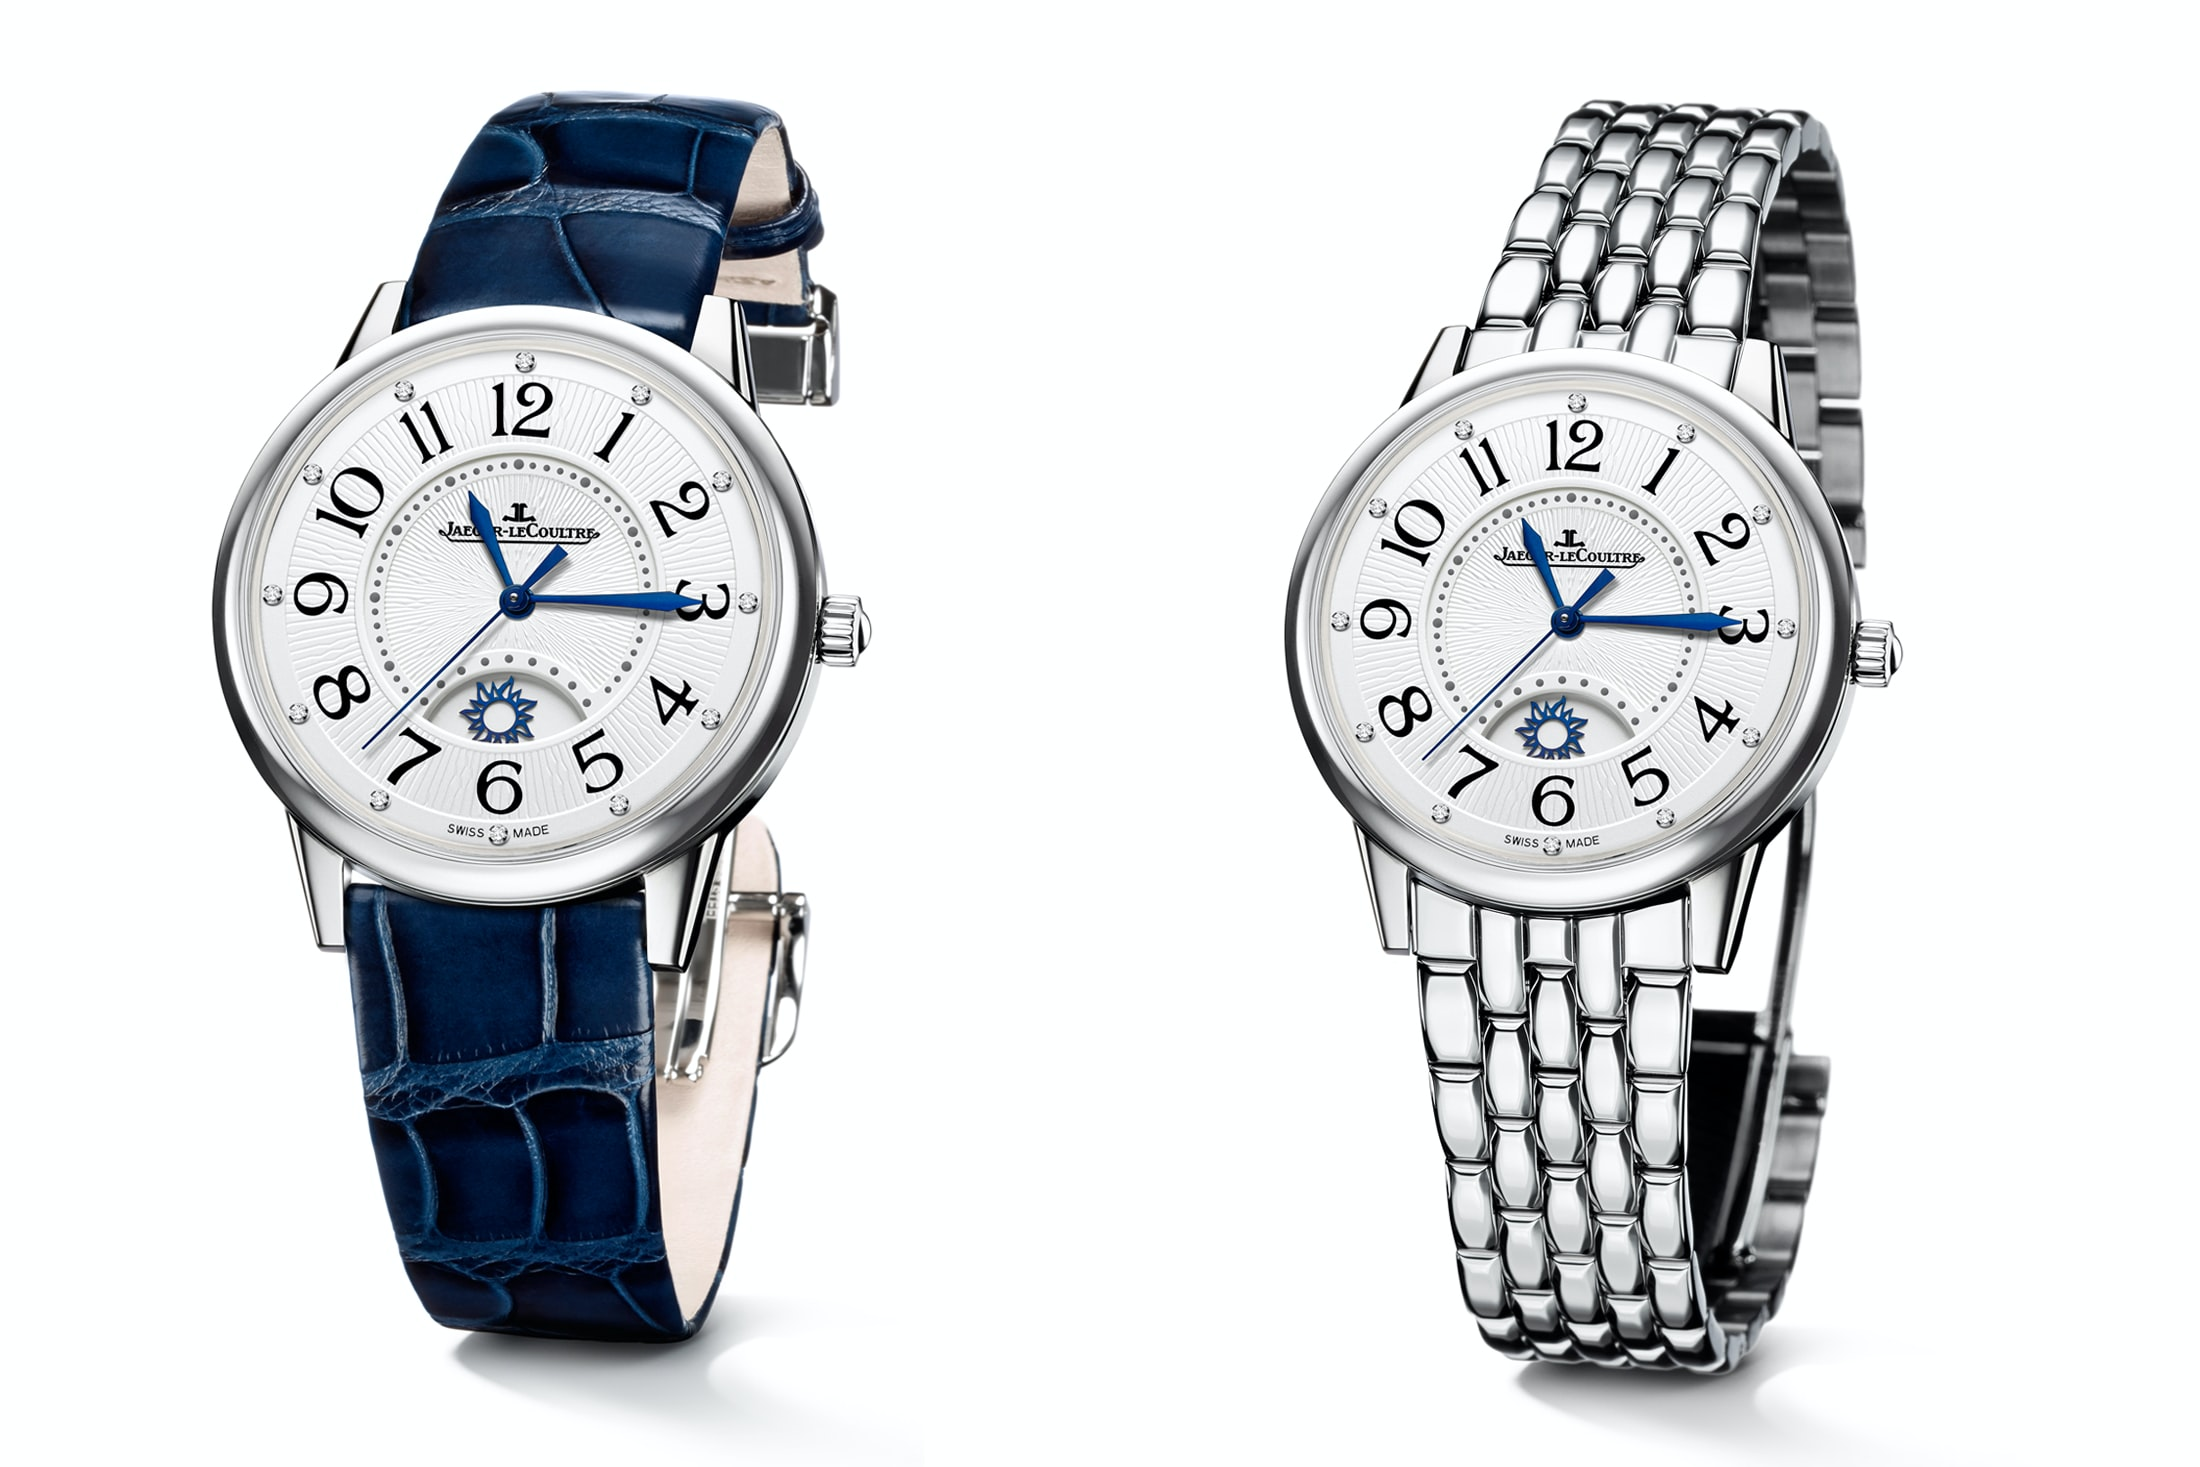 Introducing: The Jaeger-LeCoultre Rendez-Vous Night & Day In New 38.5mm 'Large' Size Introducing: The Jaeger-LeCoultre Rendez-Vous Night & Day In New 38.5mm 'Large' Size jlc steel